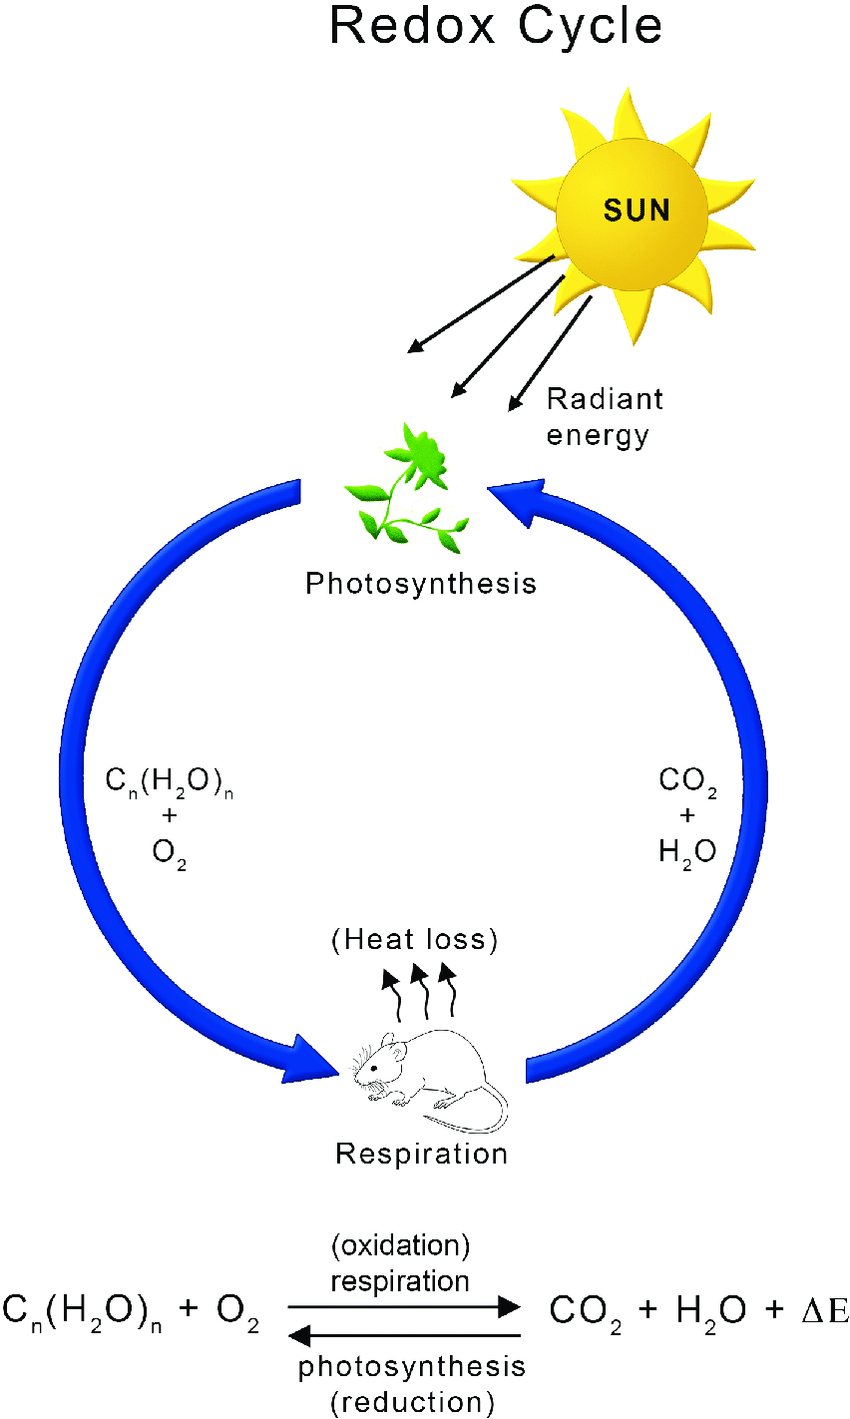 Diagram Of Photosynthesis Global Energy Flux Underlying Redox Cycle Between Photosynthesis And